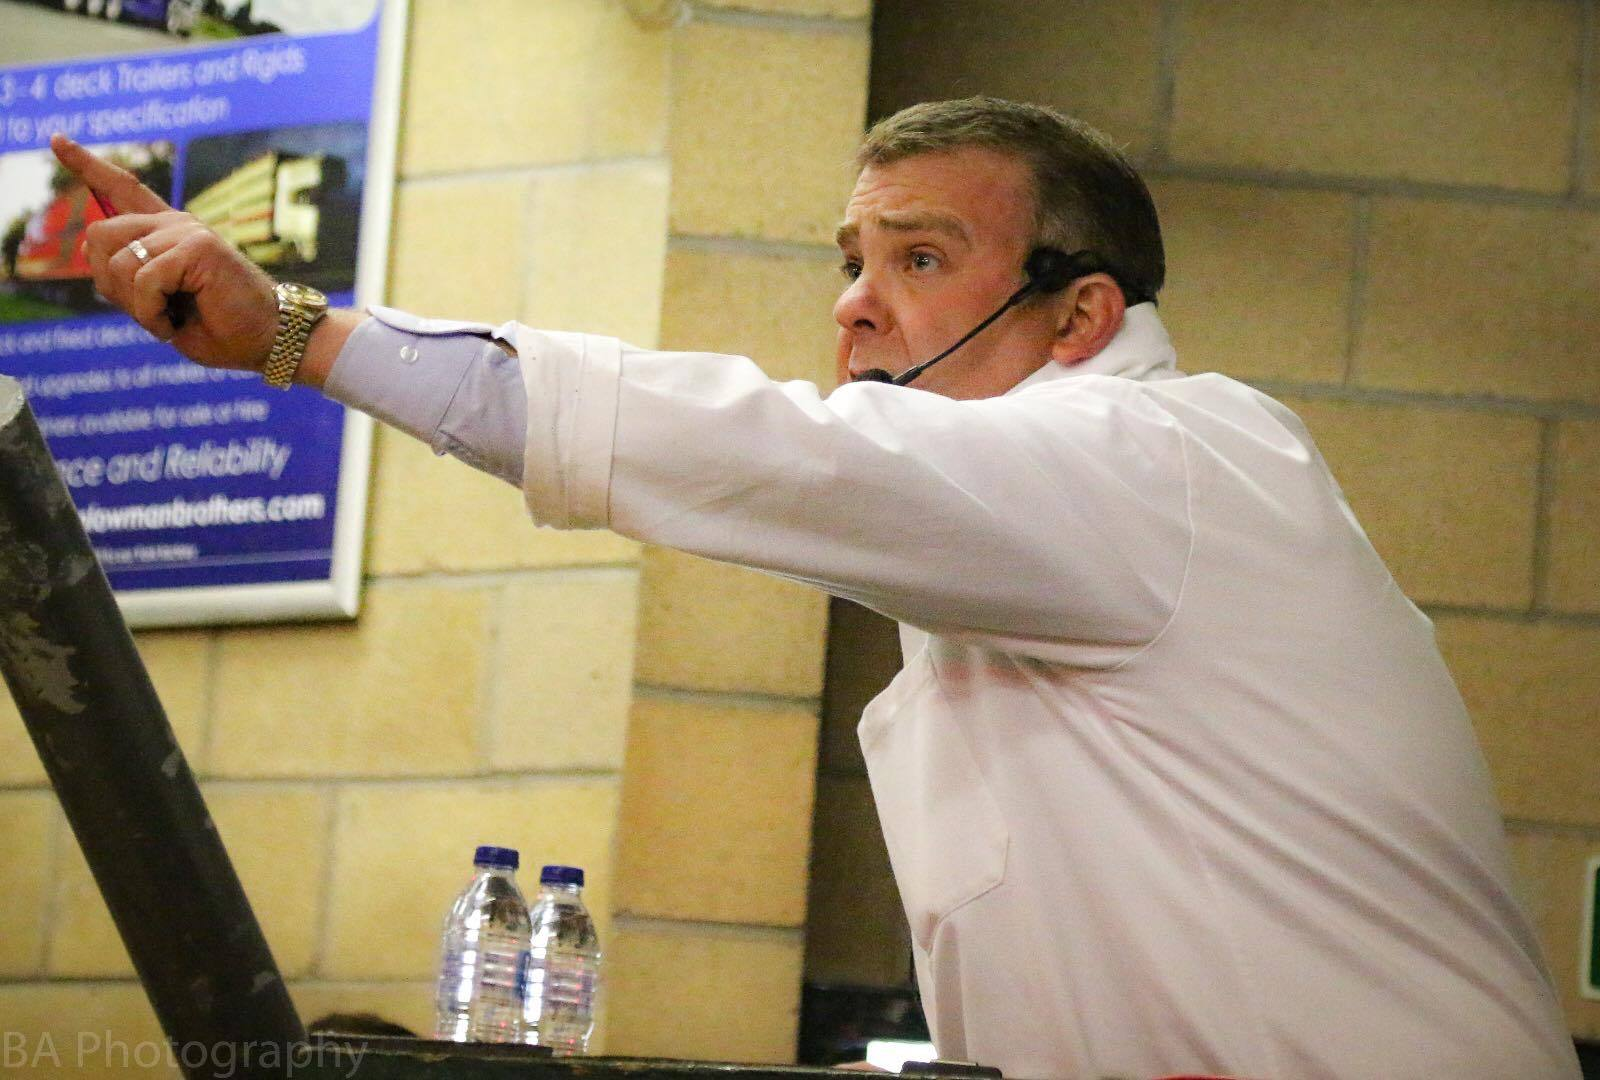 Well known auctioneer, Paul Gentry, is heading to North West Auctions to head up the livestock team there